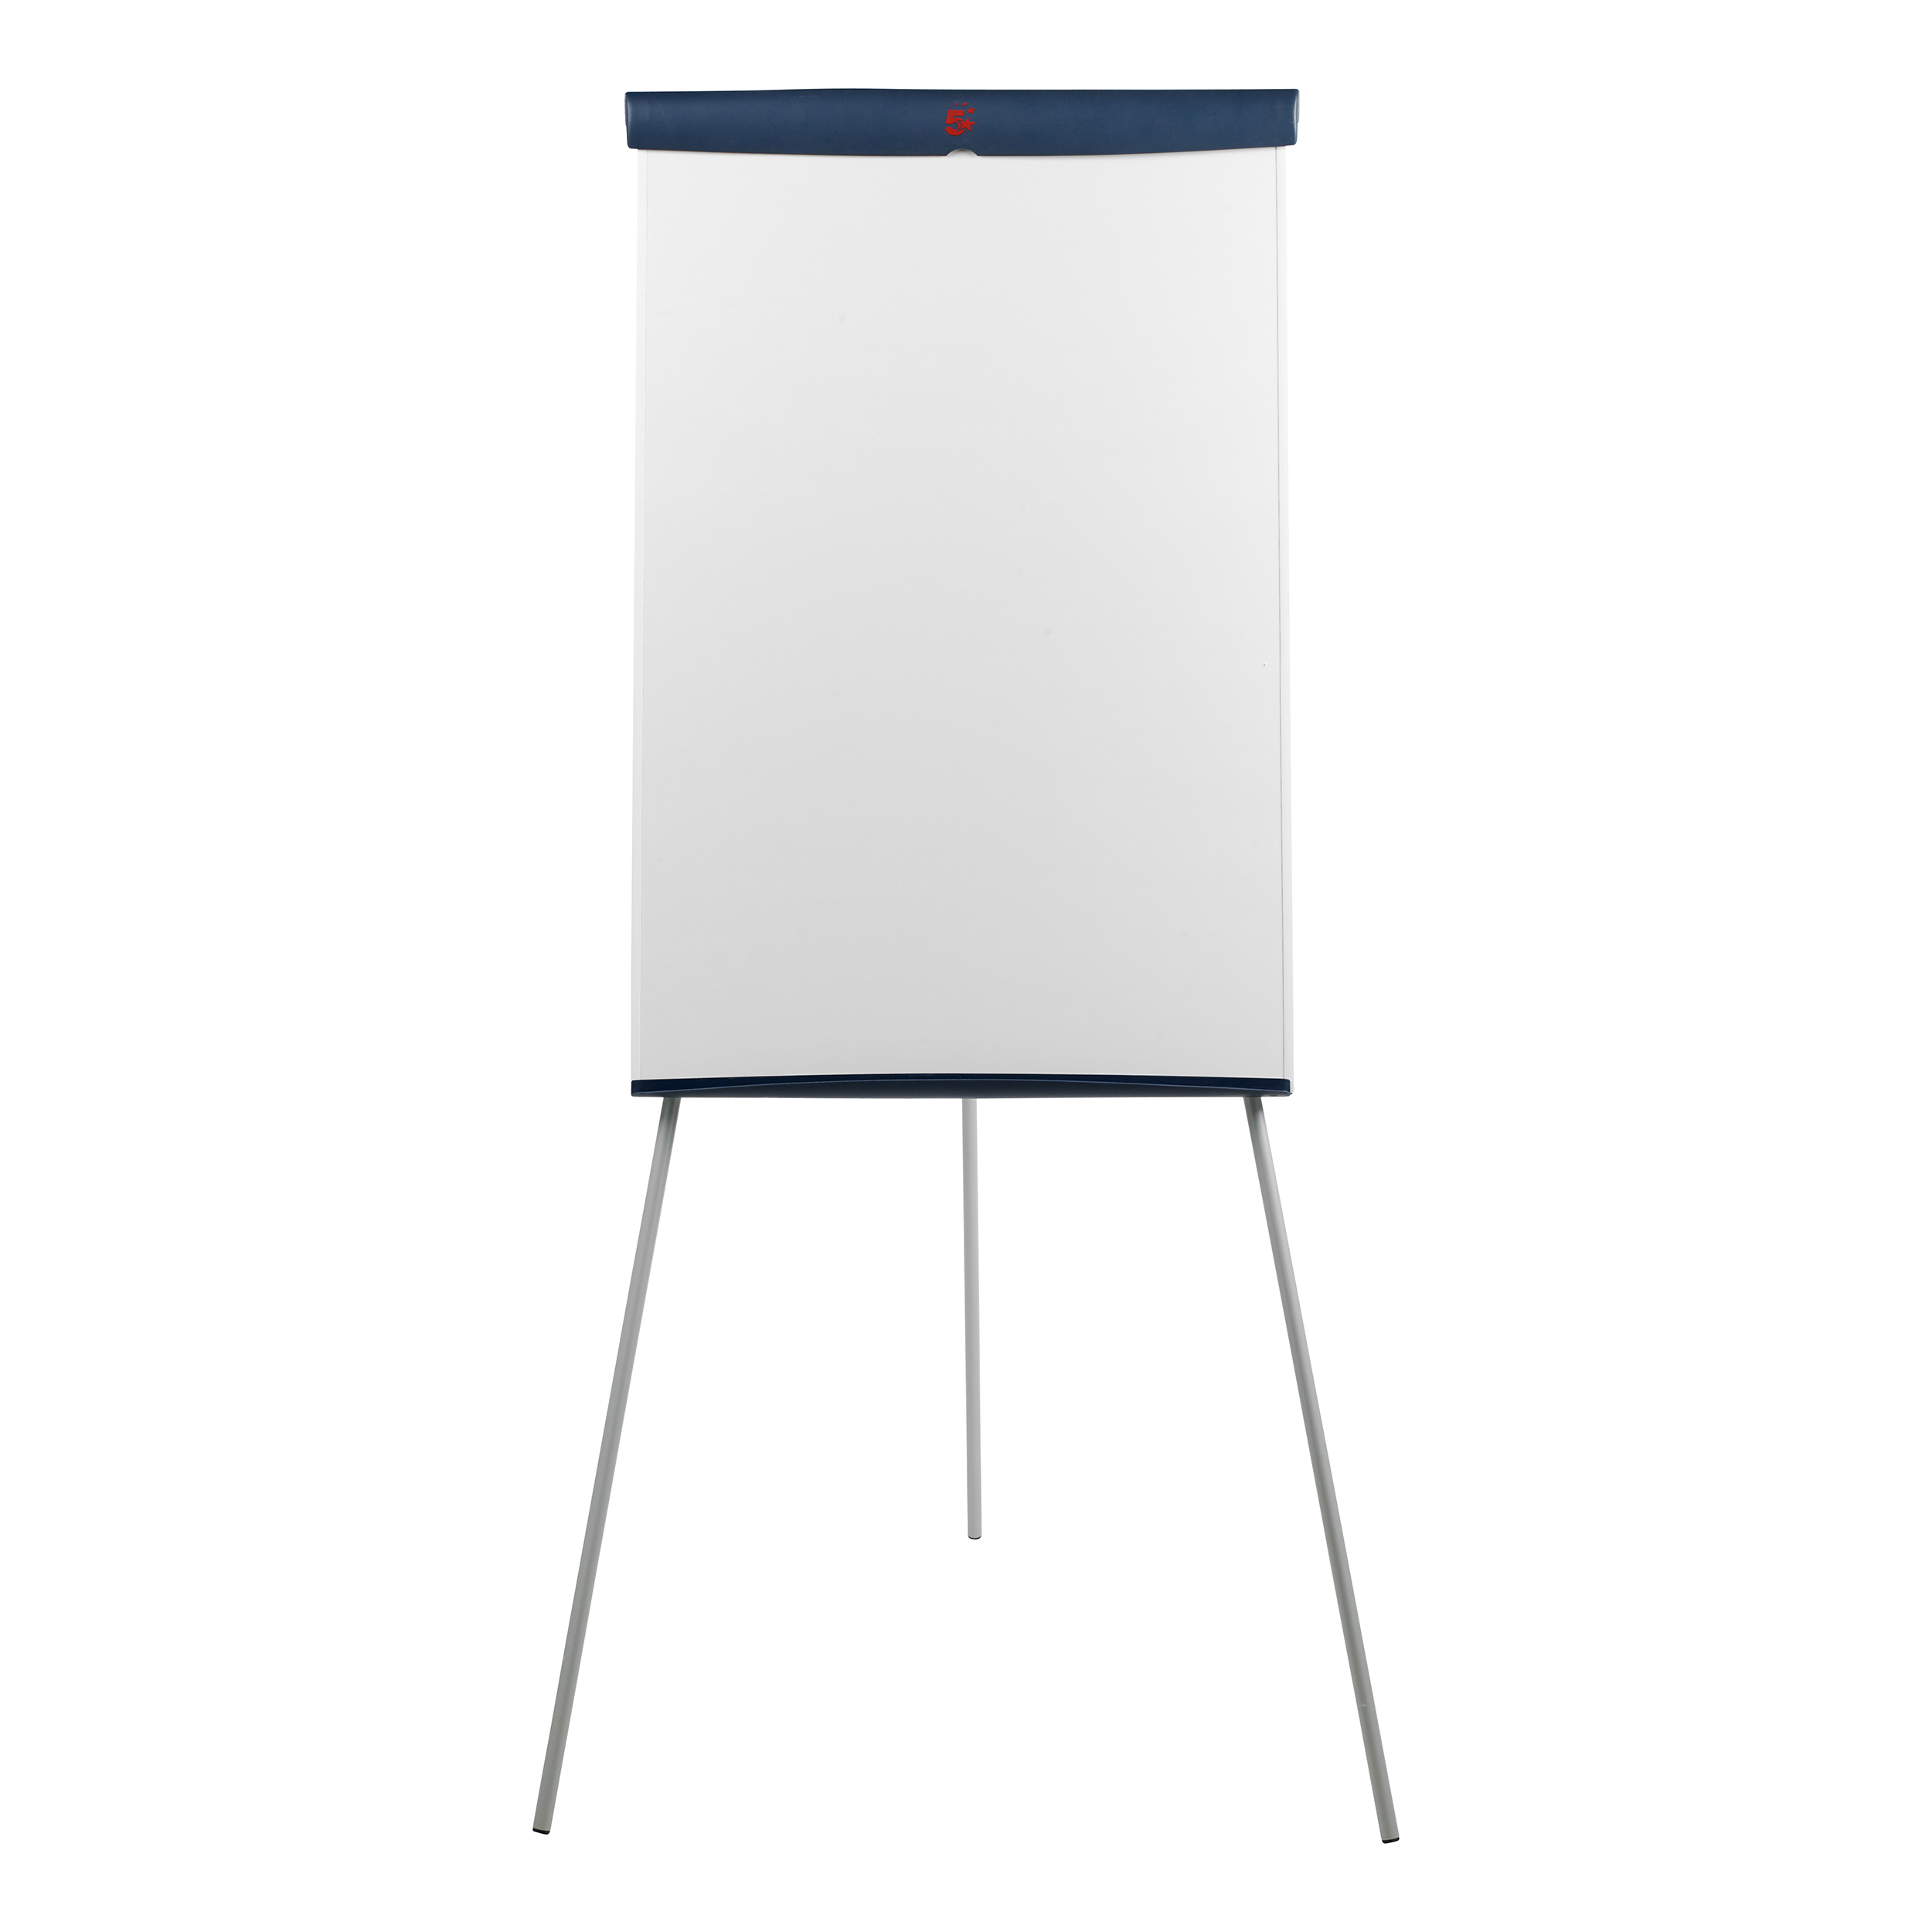 5 Star Flipchart Easel with 670x990mm Board 700x82x1900mm Blue Trim